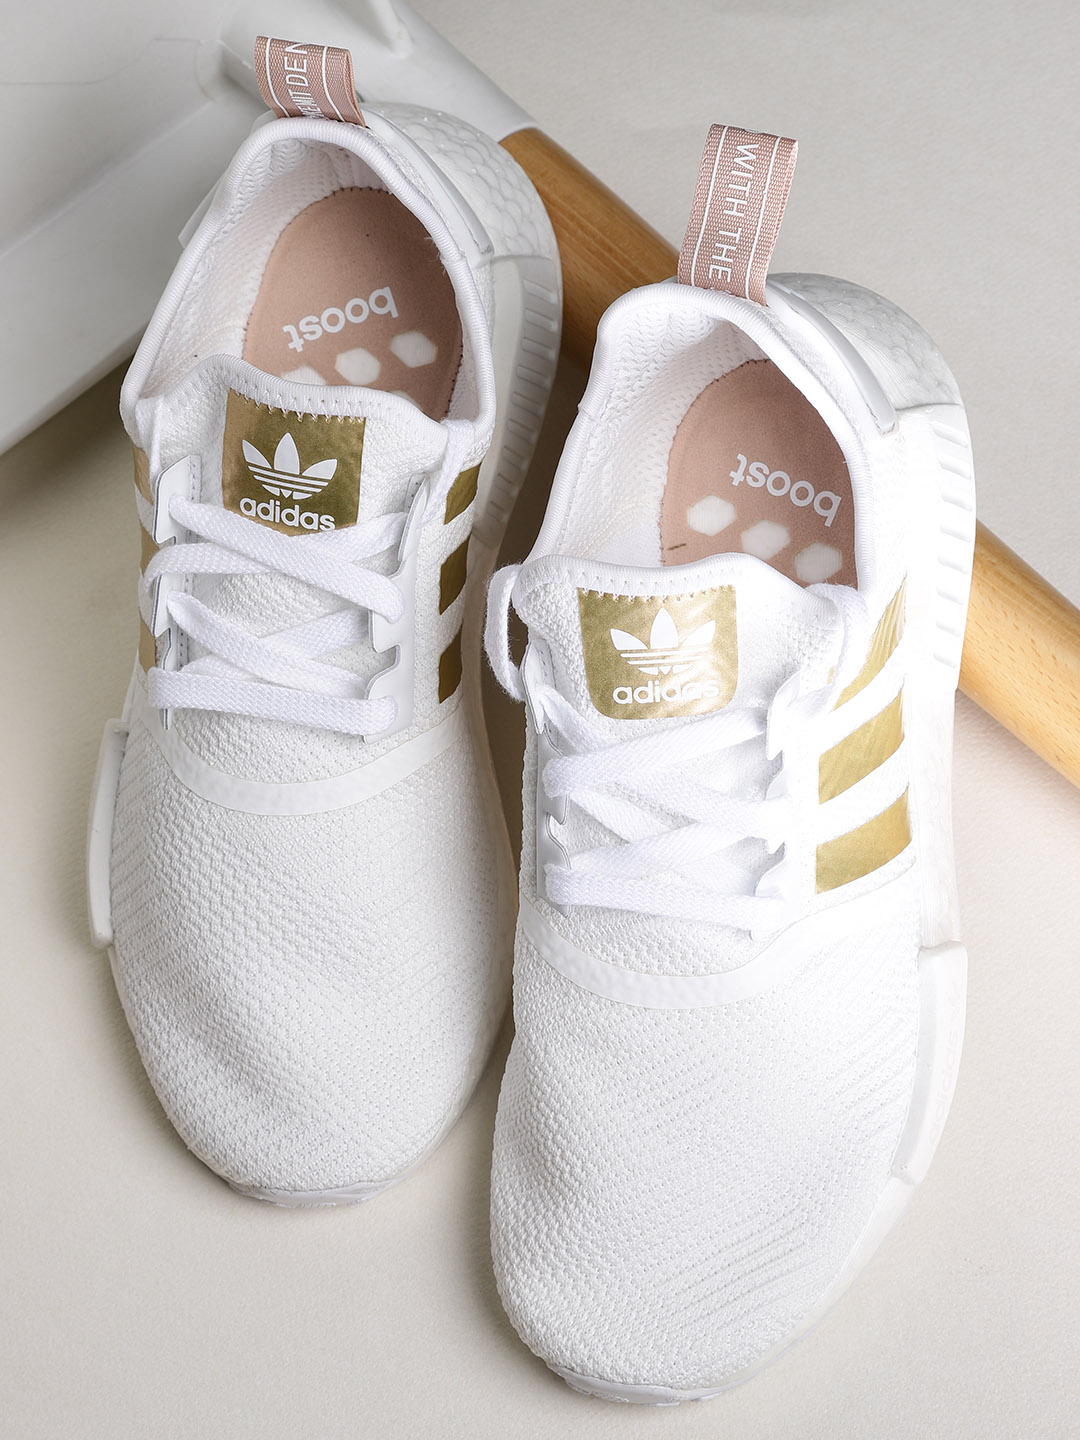 fd8dac3b-a6f4-4f55-85b9-4ee570b712231539333586615-Adidas-Originals-Women-White-NMD R1-Patterned-Sneakers-4891539333586469-1